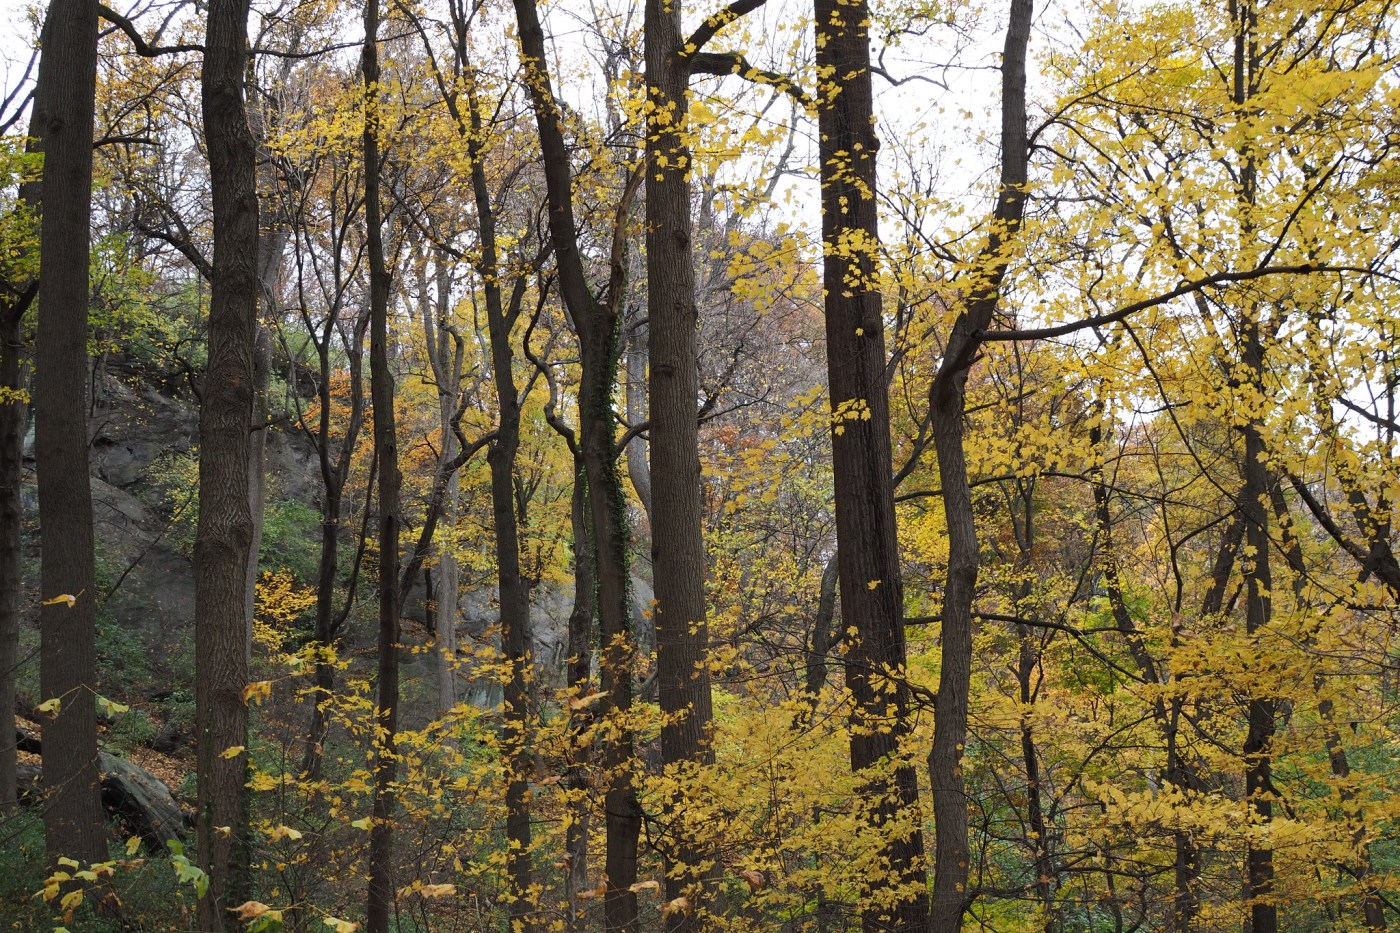 Trees at Inwood Hill Park